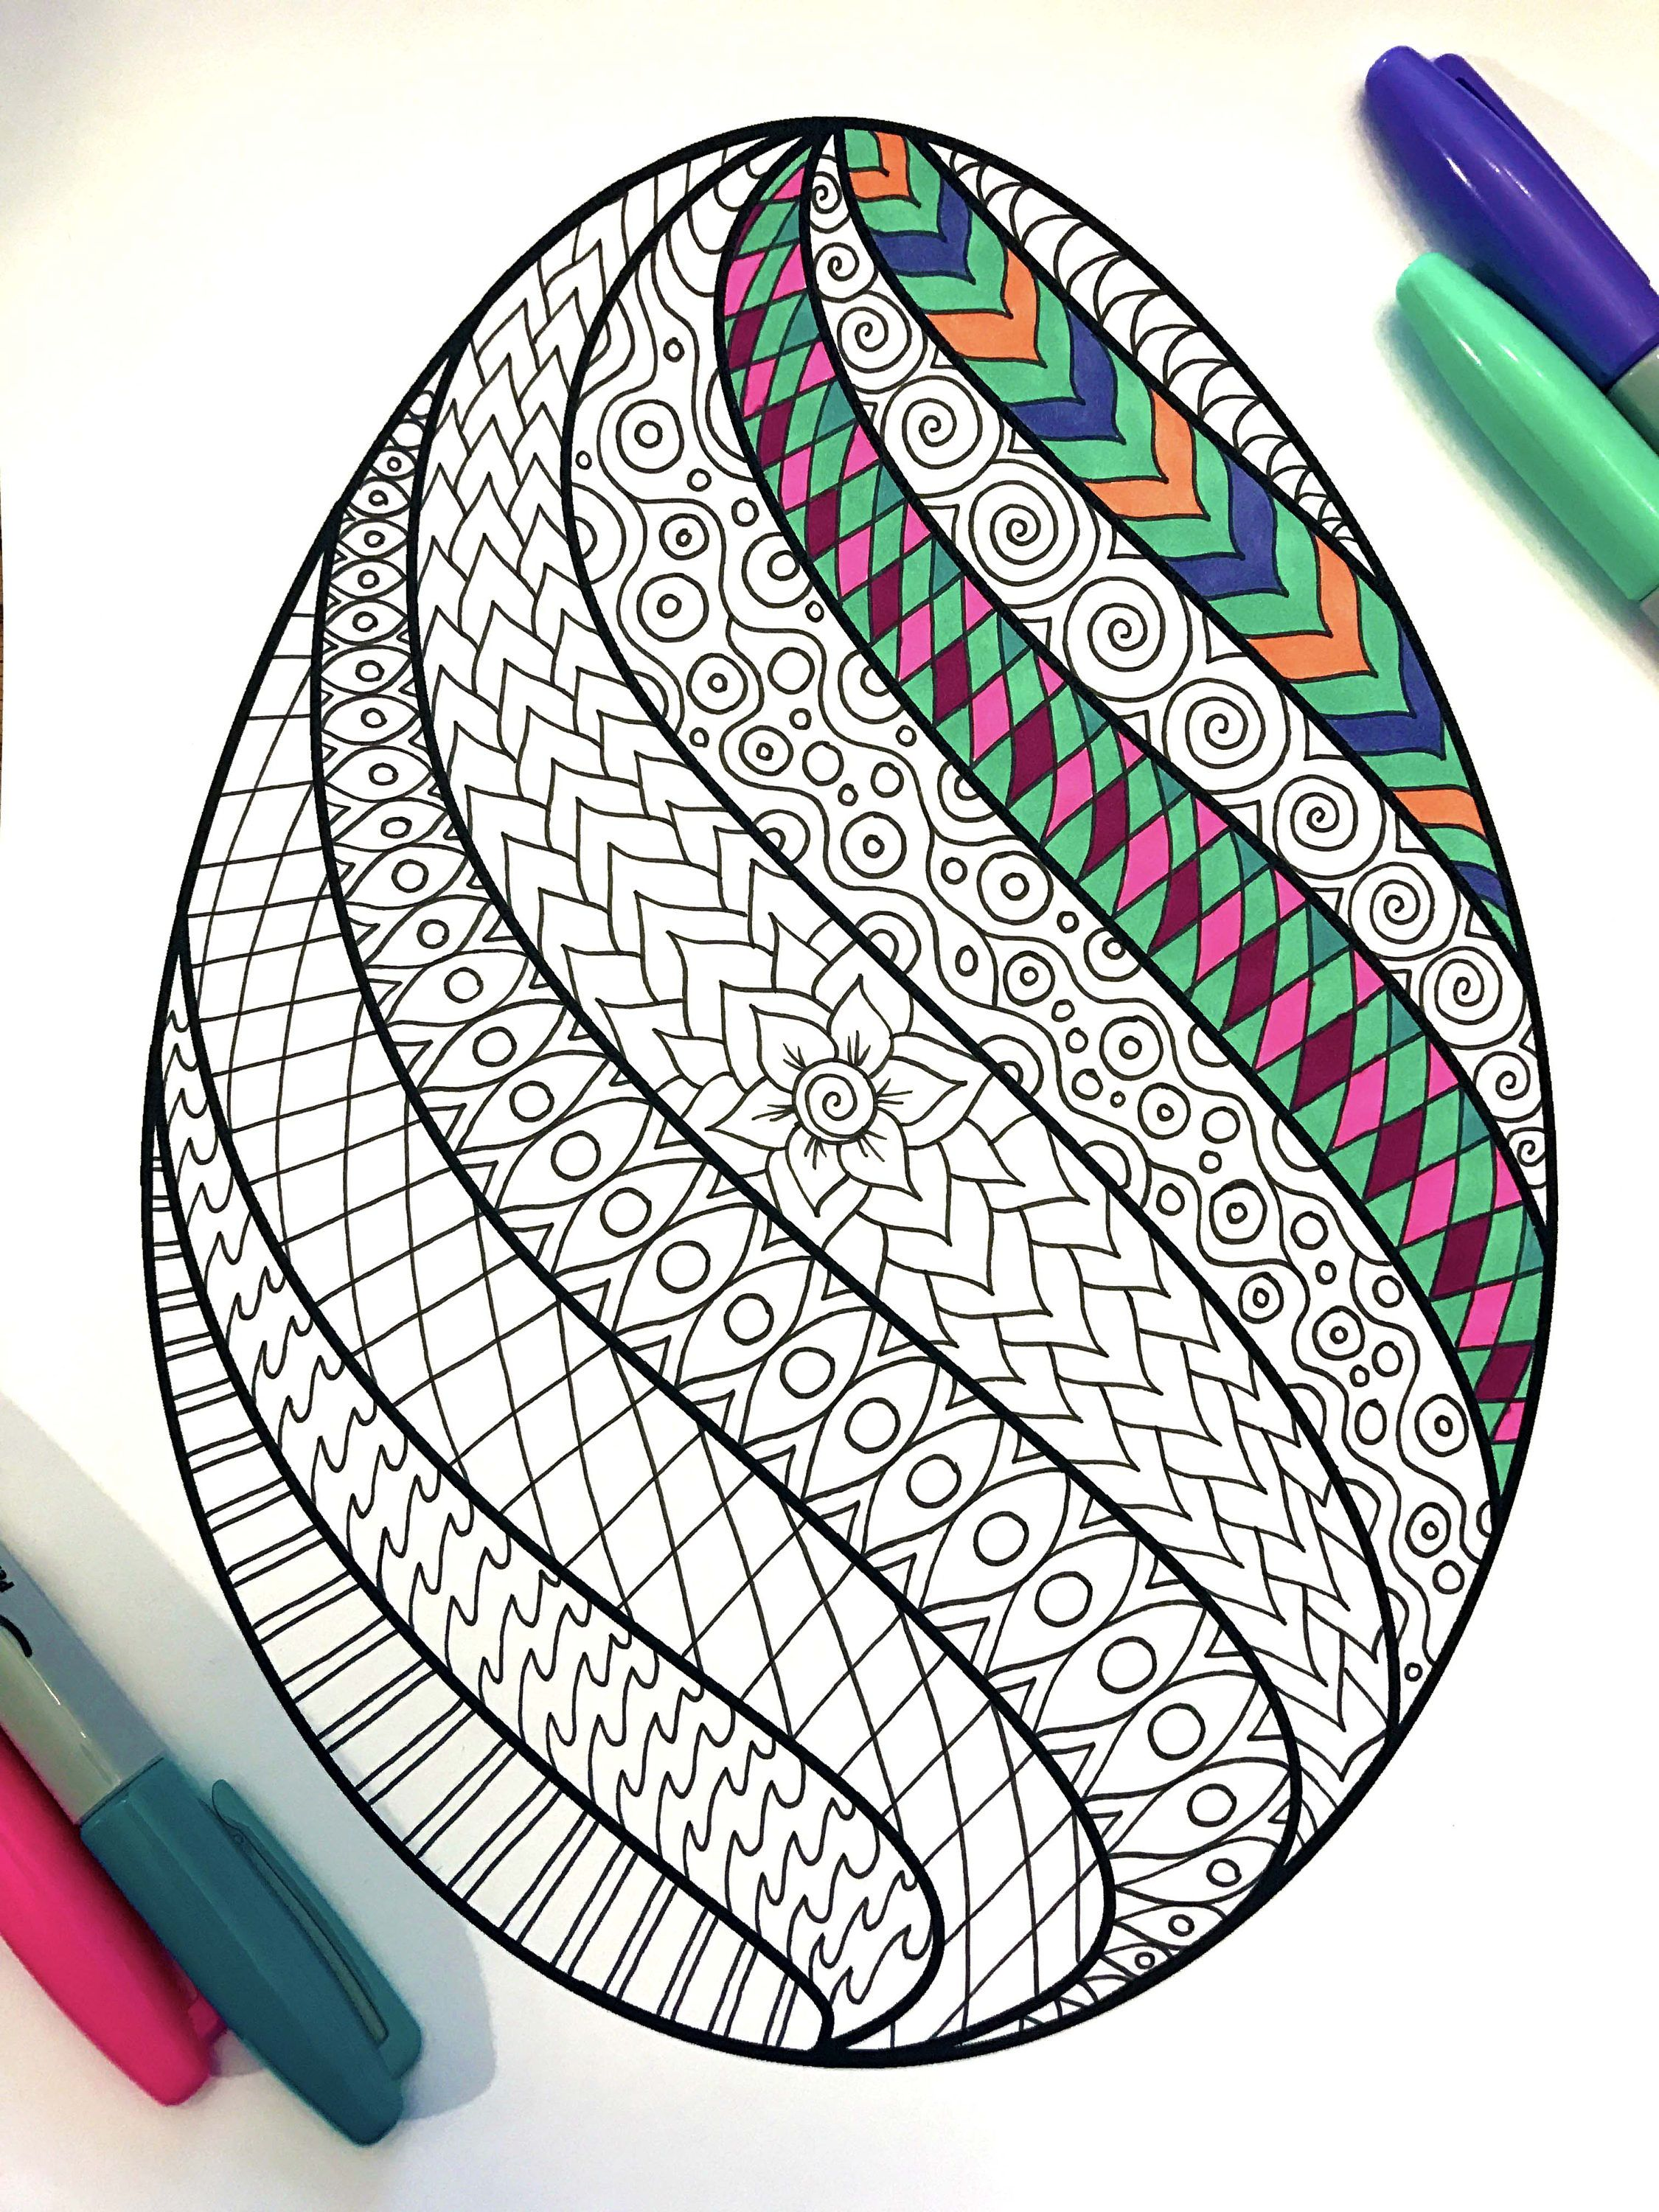 85x11 PDF Coloring Page Of An Easter Egg With A Swirl Design This Is